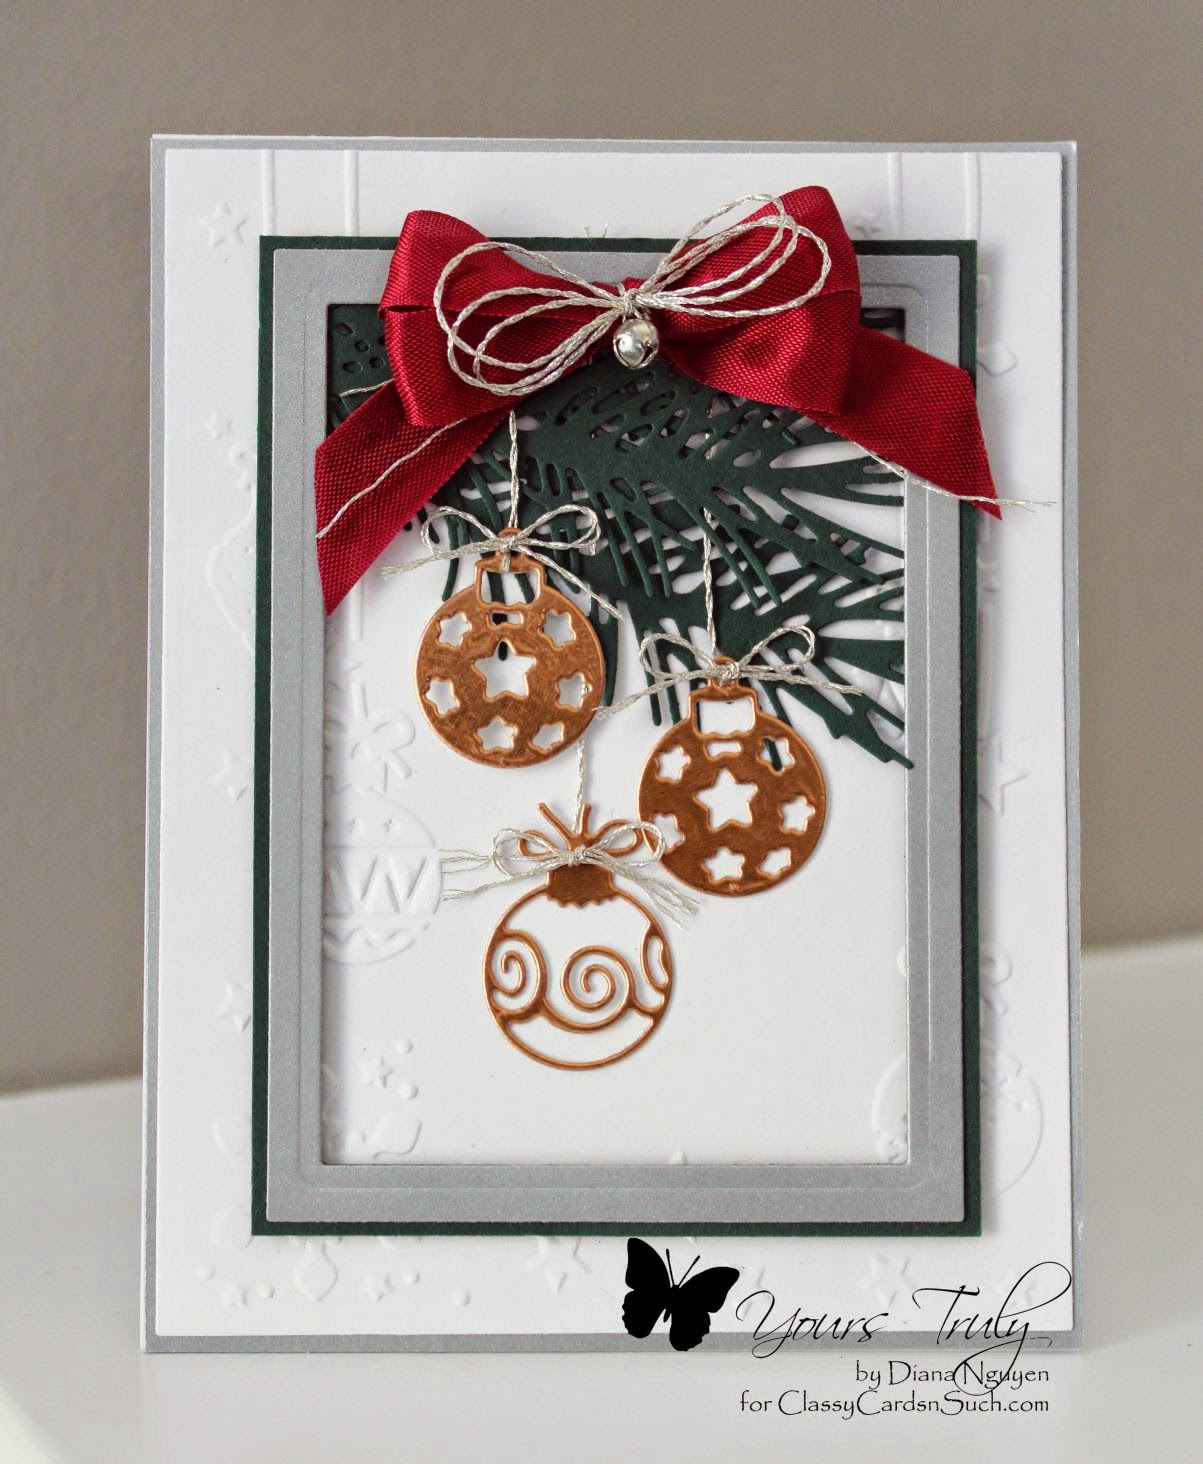 Diana Nguyen, Christmas, Impression Obsession Christmas Icons, Pine branch